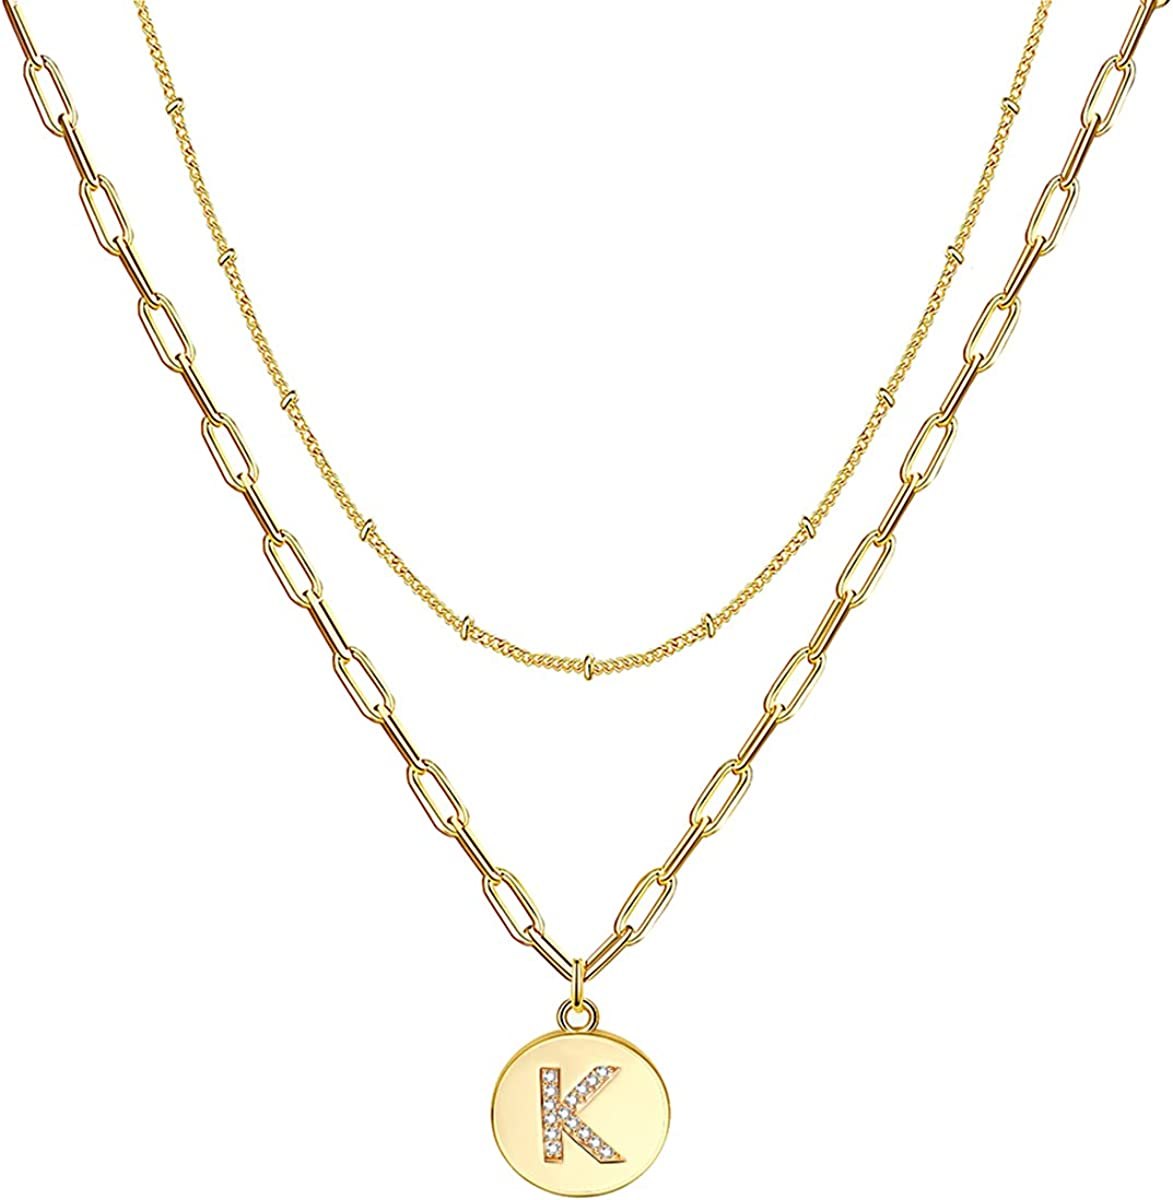 Reoxvo Dainty Gold Initial Layered Necklaces for Women,18K Gold Plated Layered Initial Letter Choker Necklace for Teen Girls Alphabets Trendy Gold Necklaces for Women